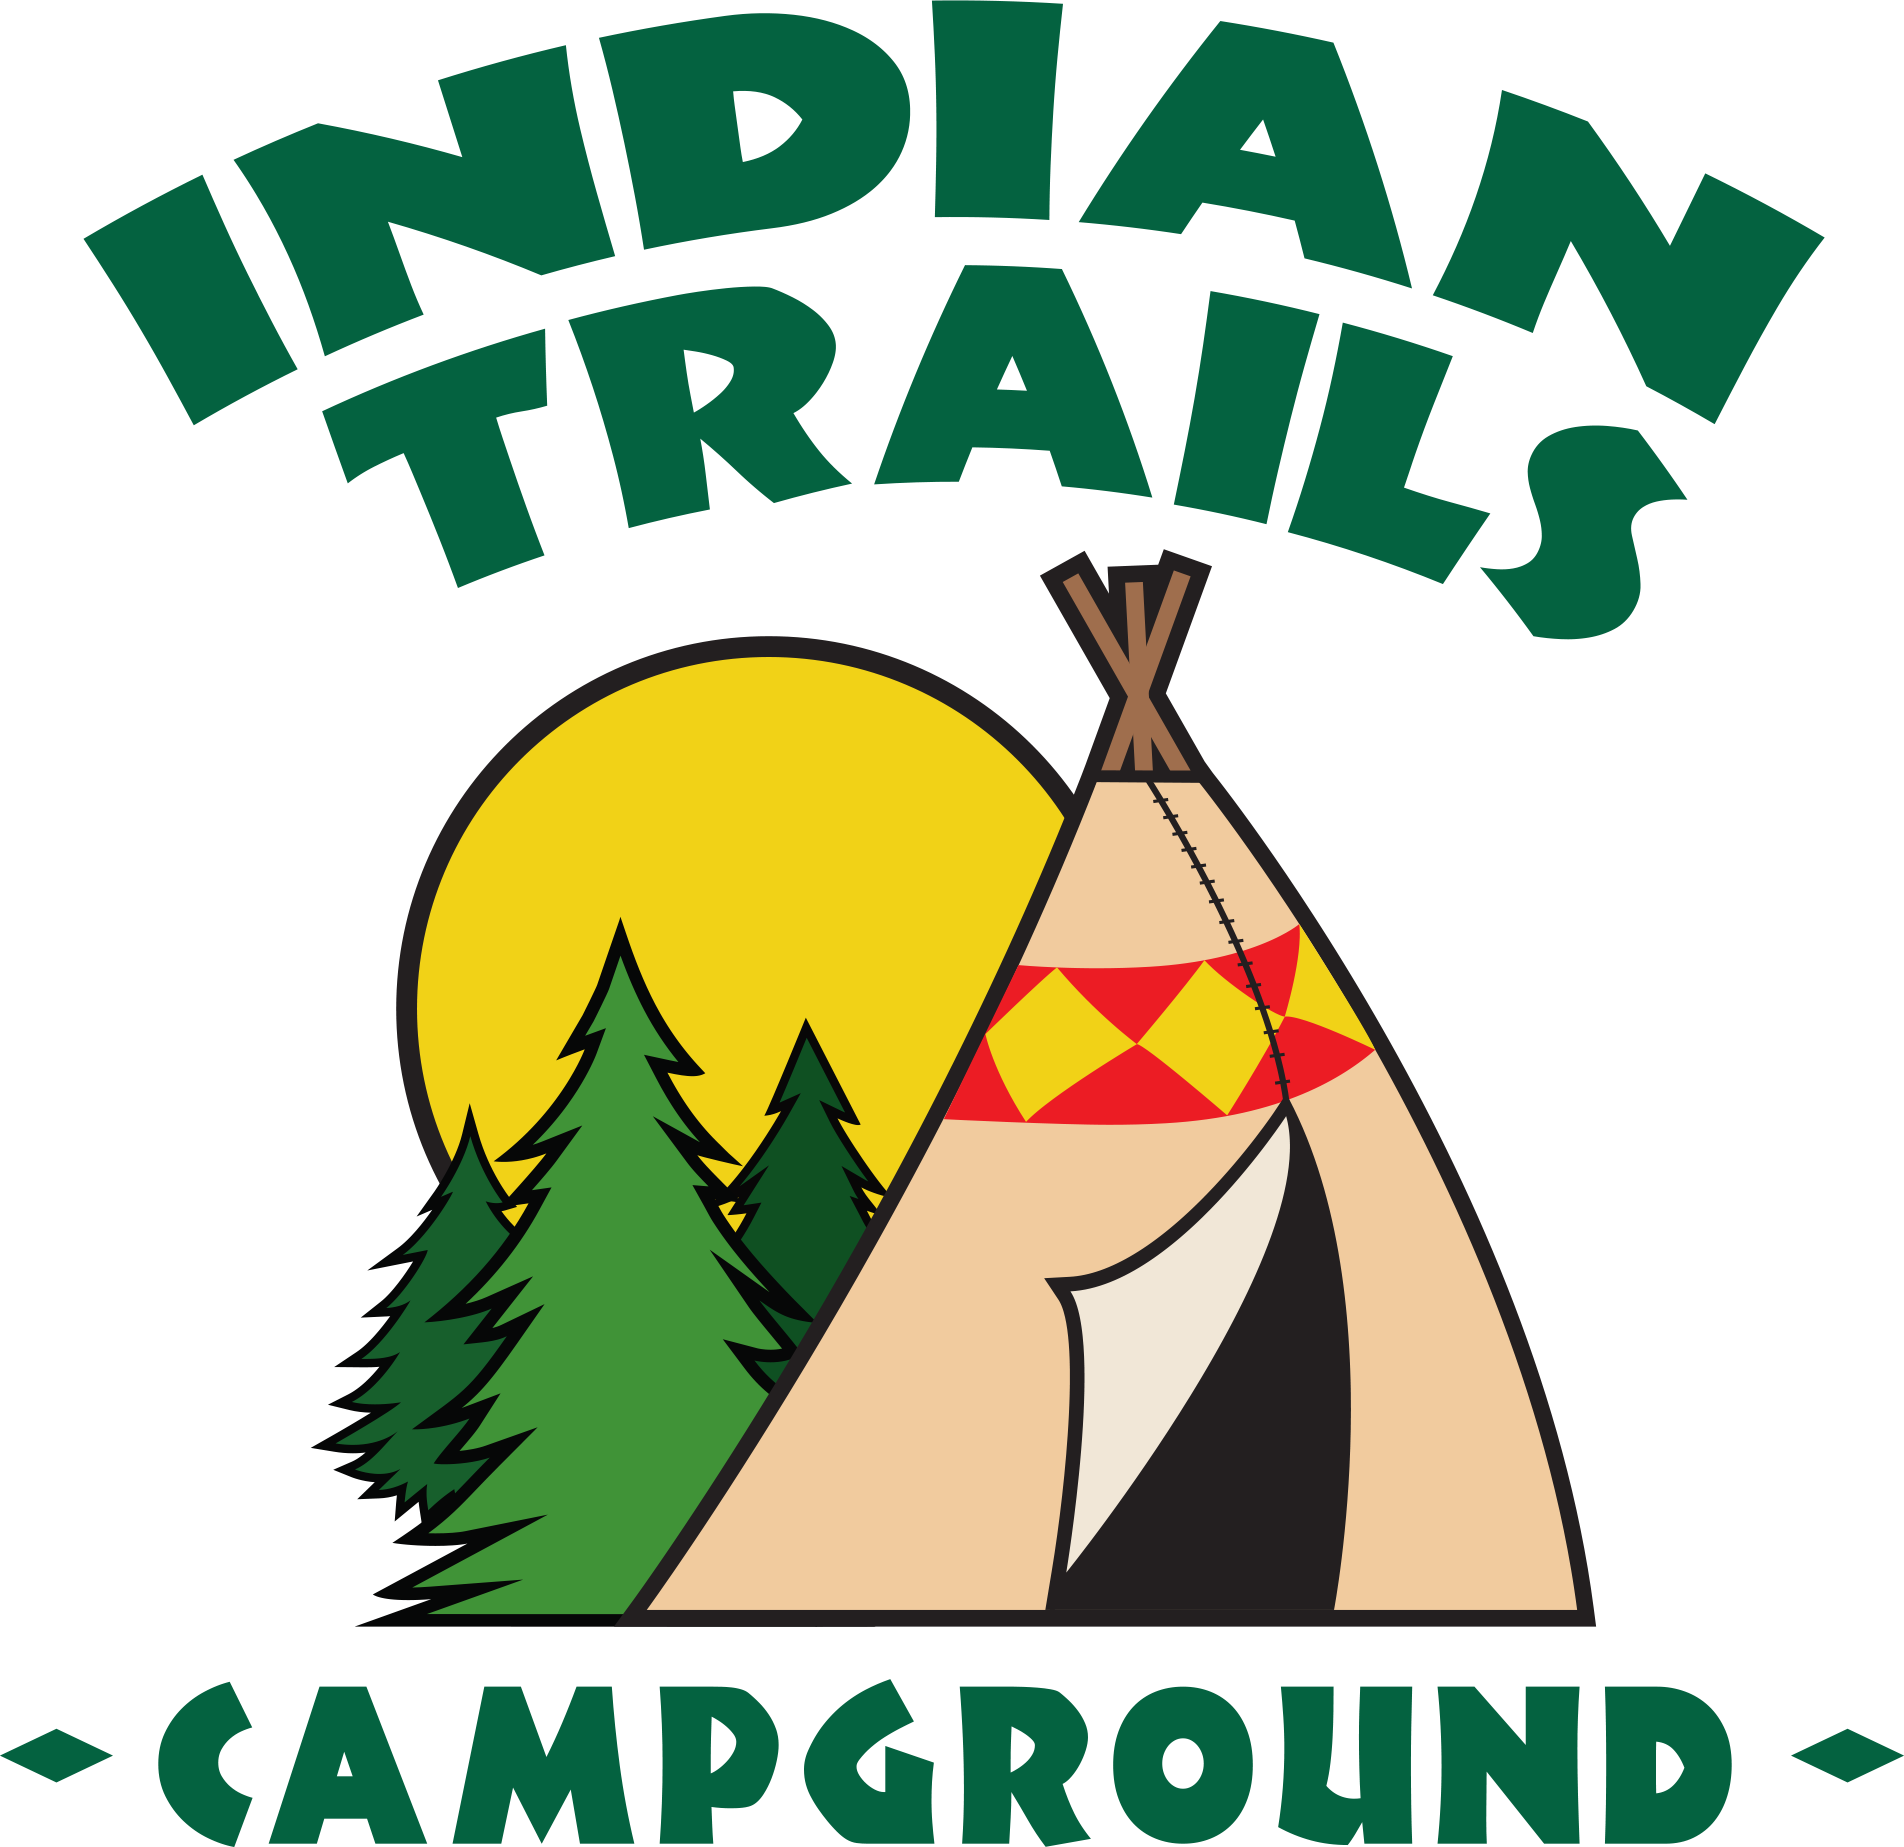 Indian Trails Campground logo